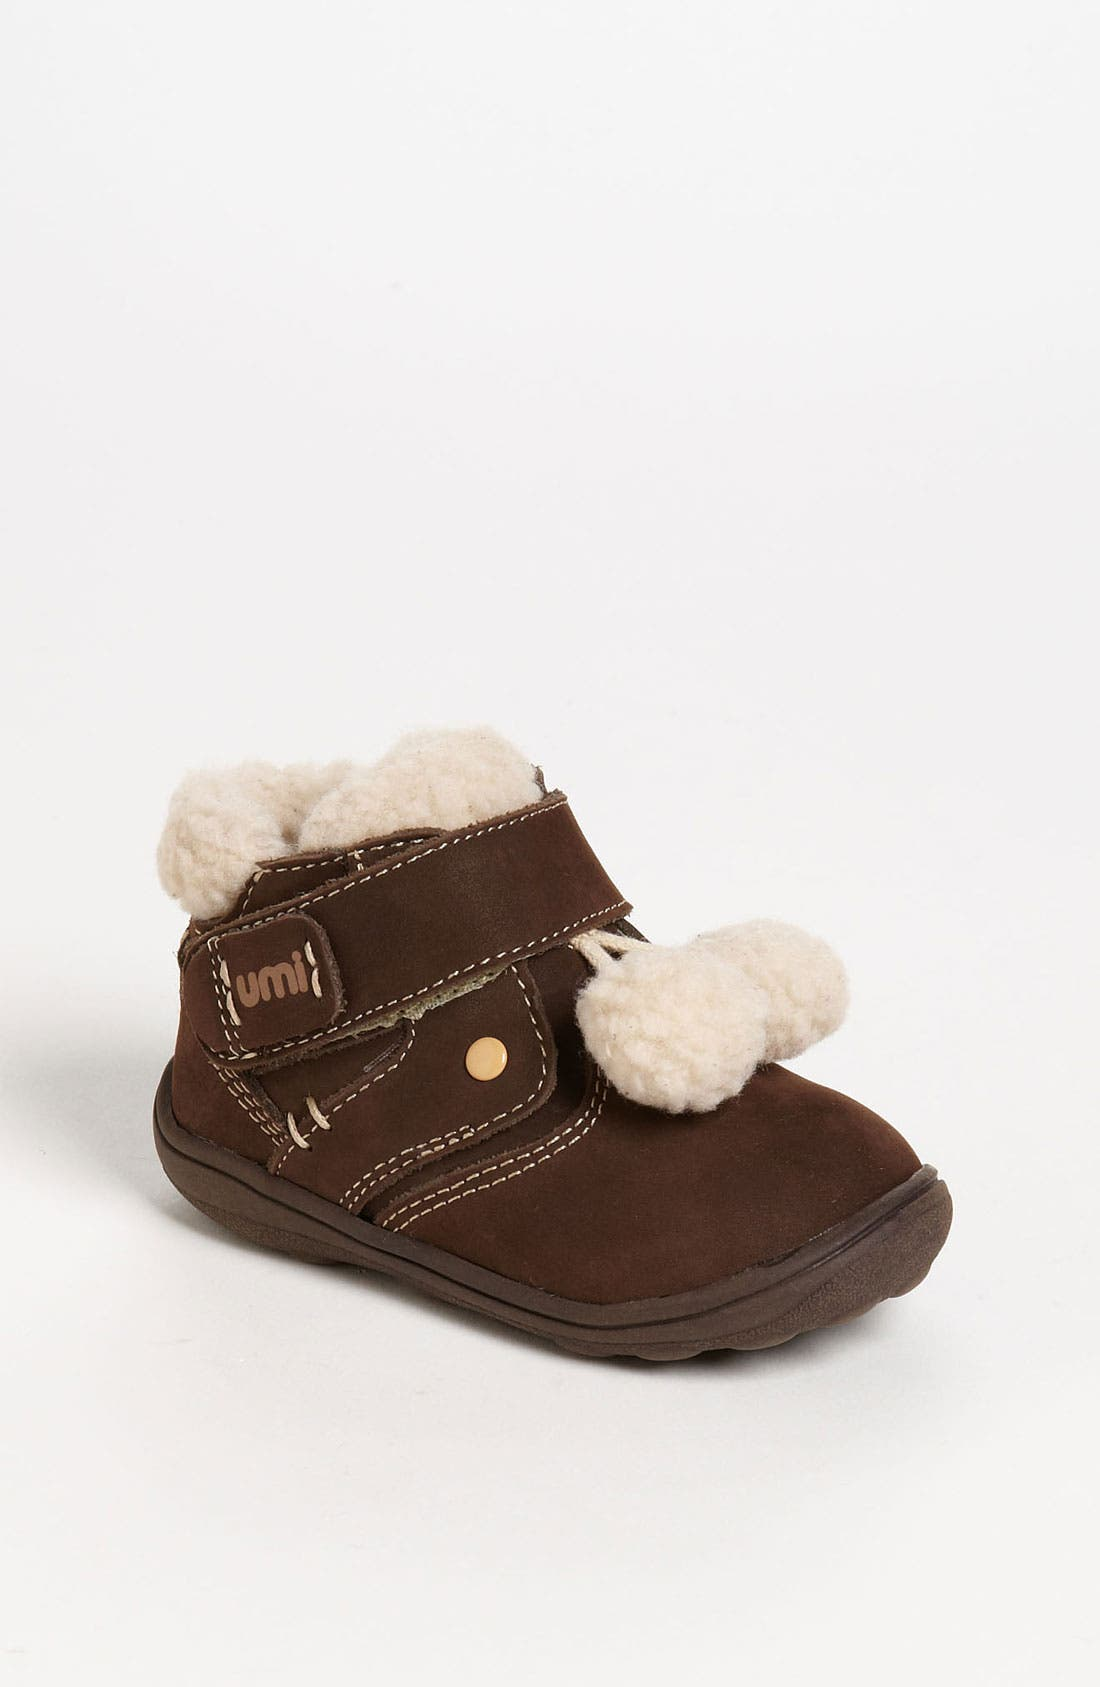 Alternate Image 1 Selected - Umi 'Darena' Bootie (Walker & Toddler)